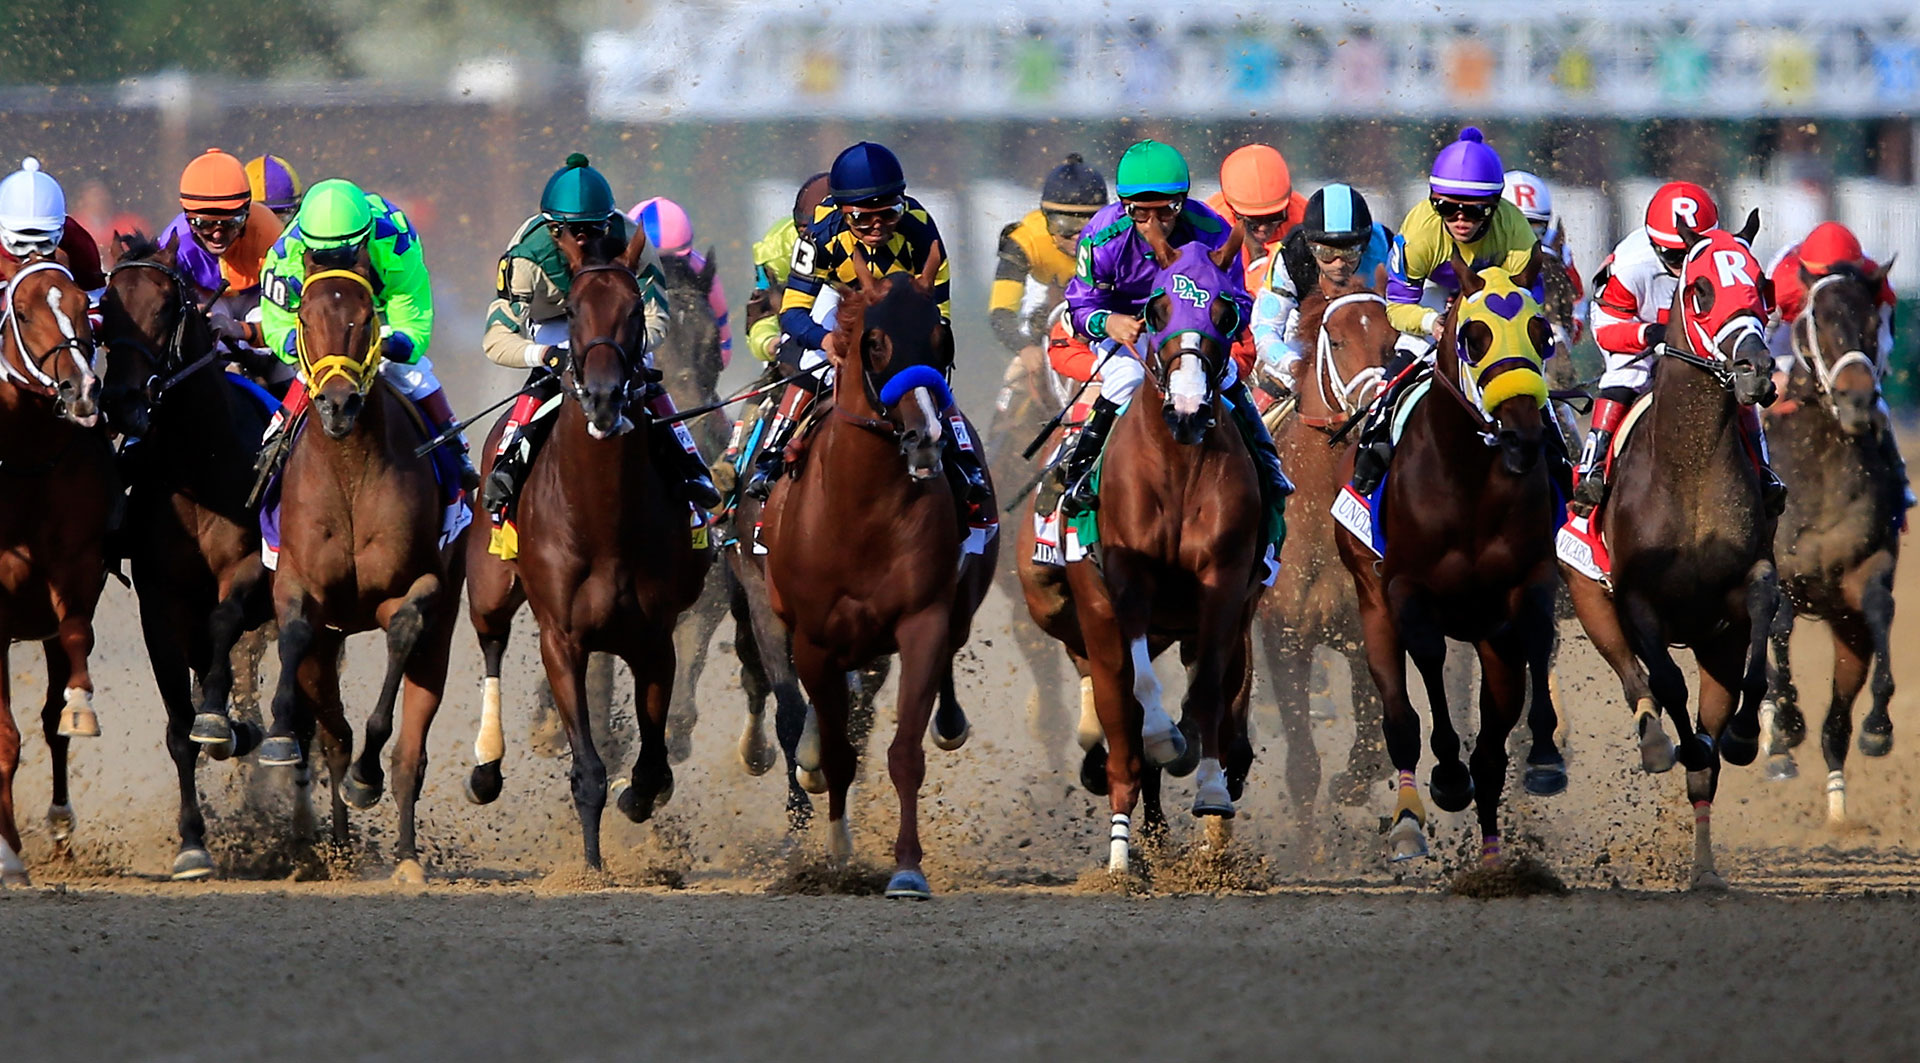 kentuckyderby-hero7.jpg